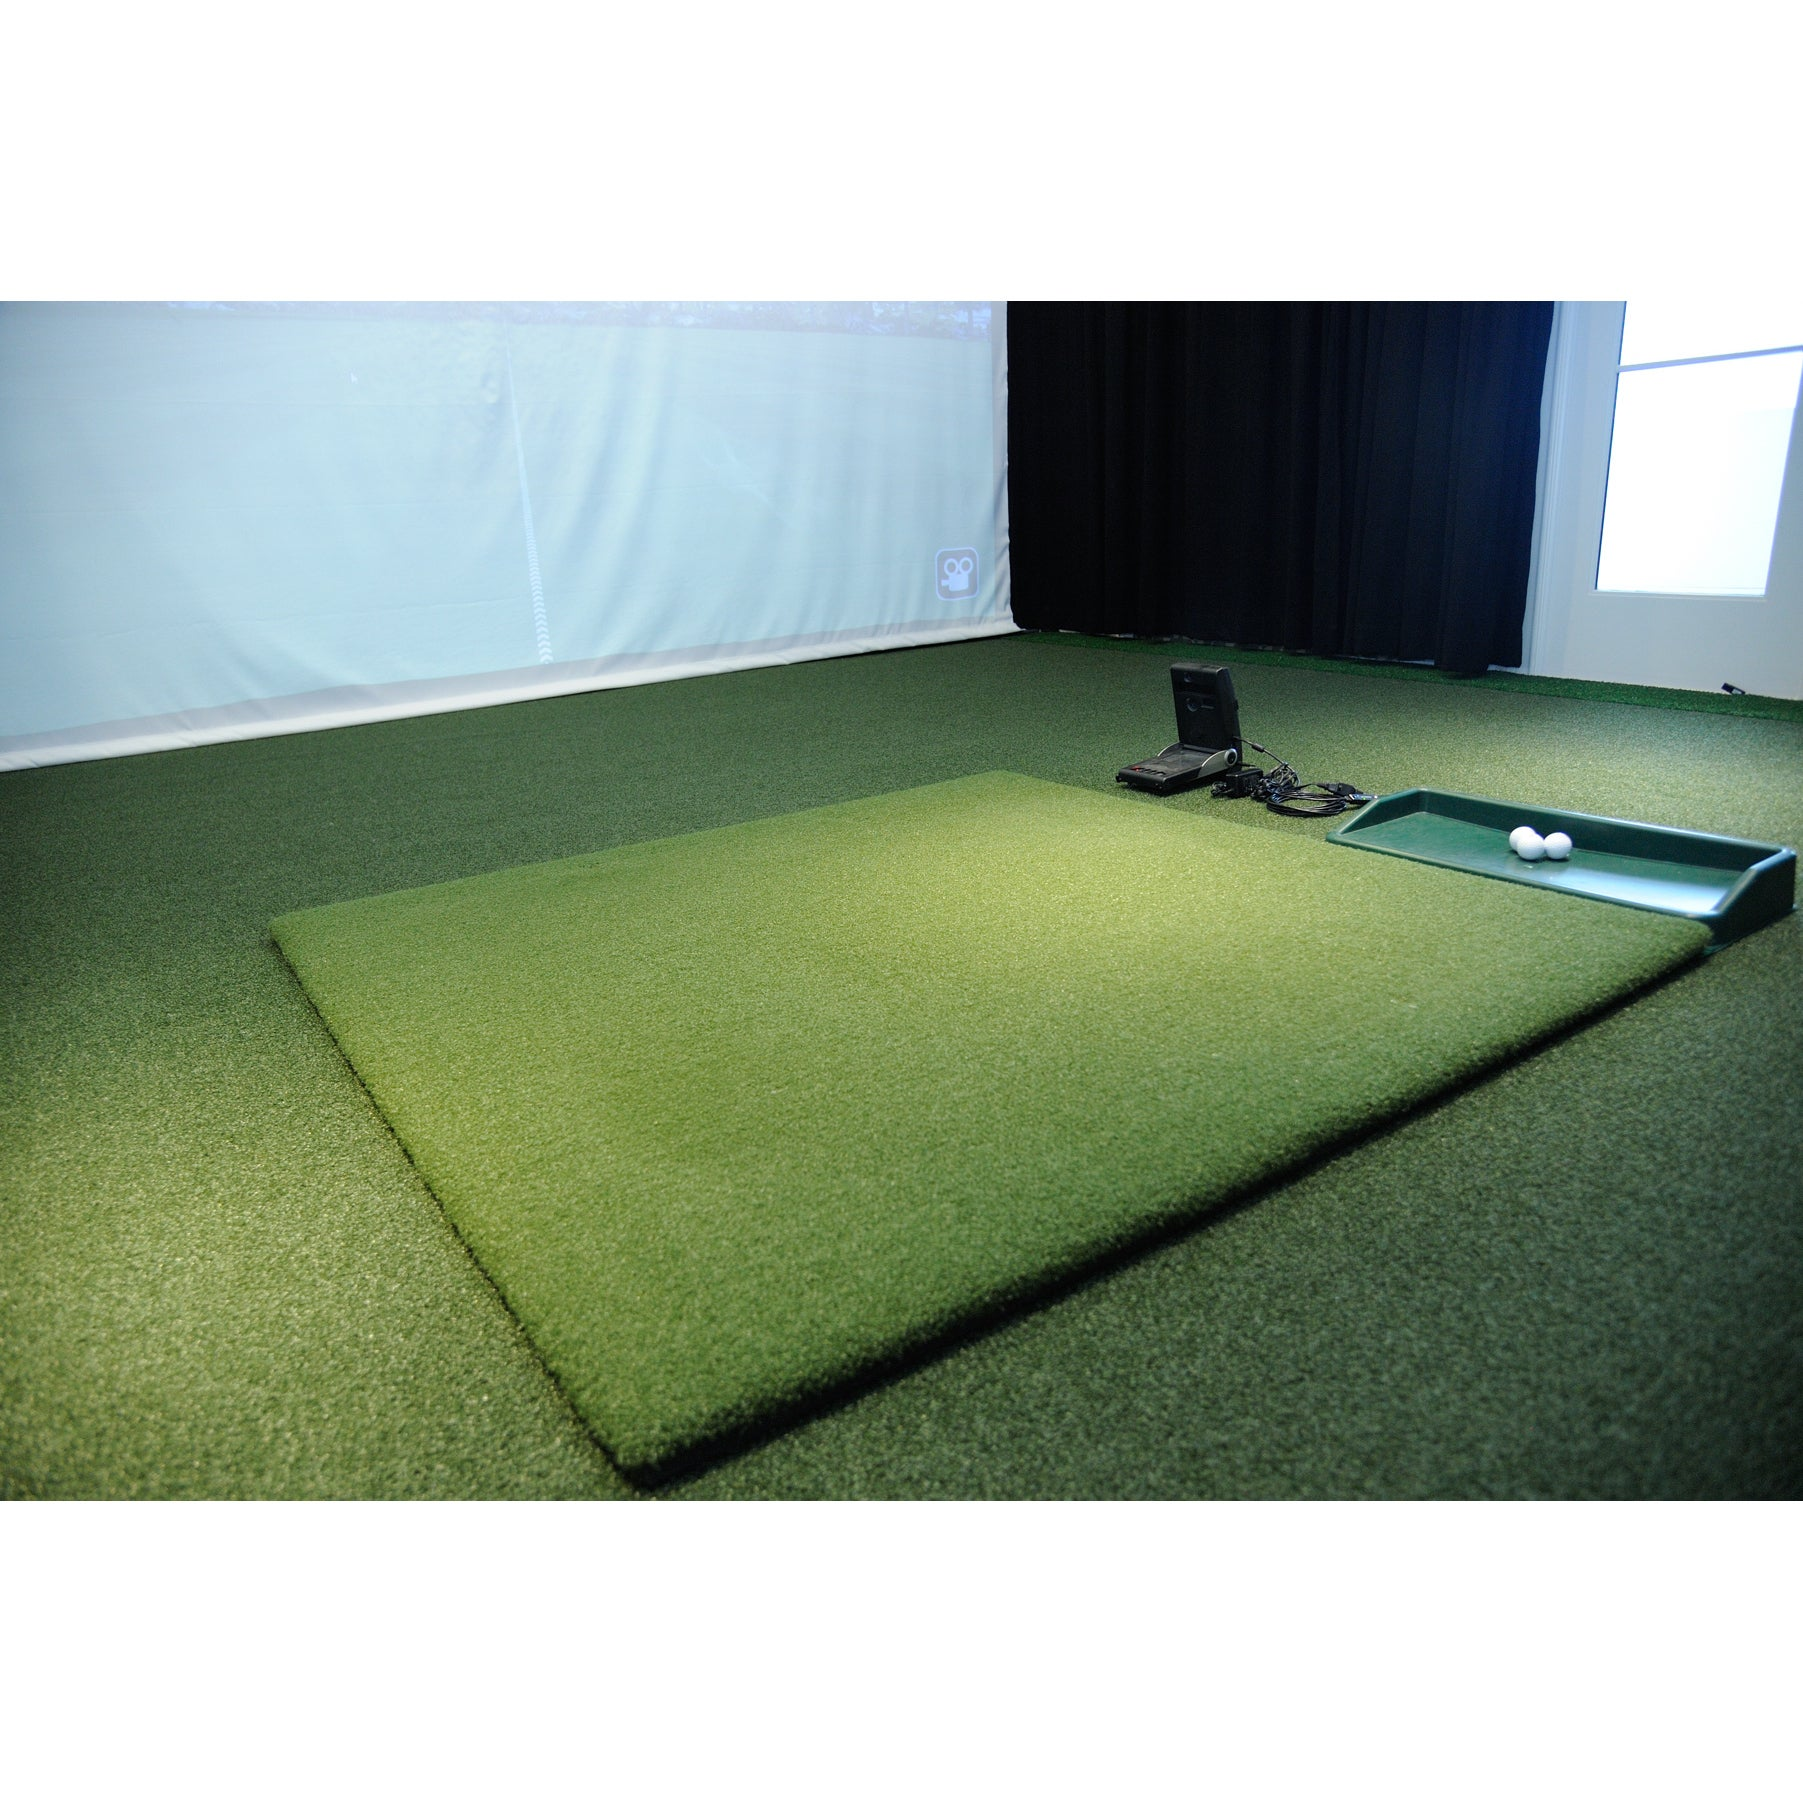 mats best artificial mat golf commercial synlawn tee strike line products turf